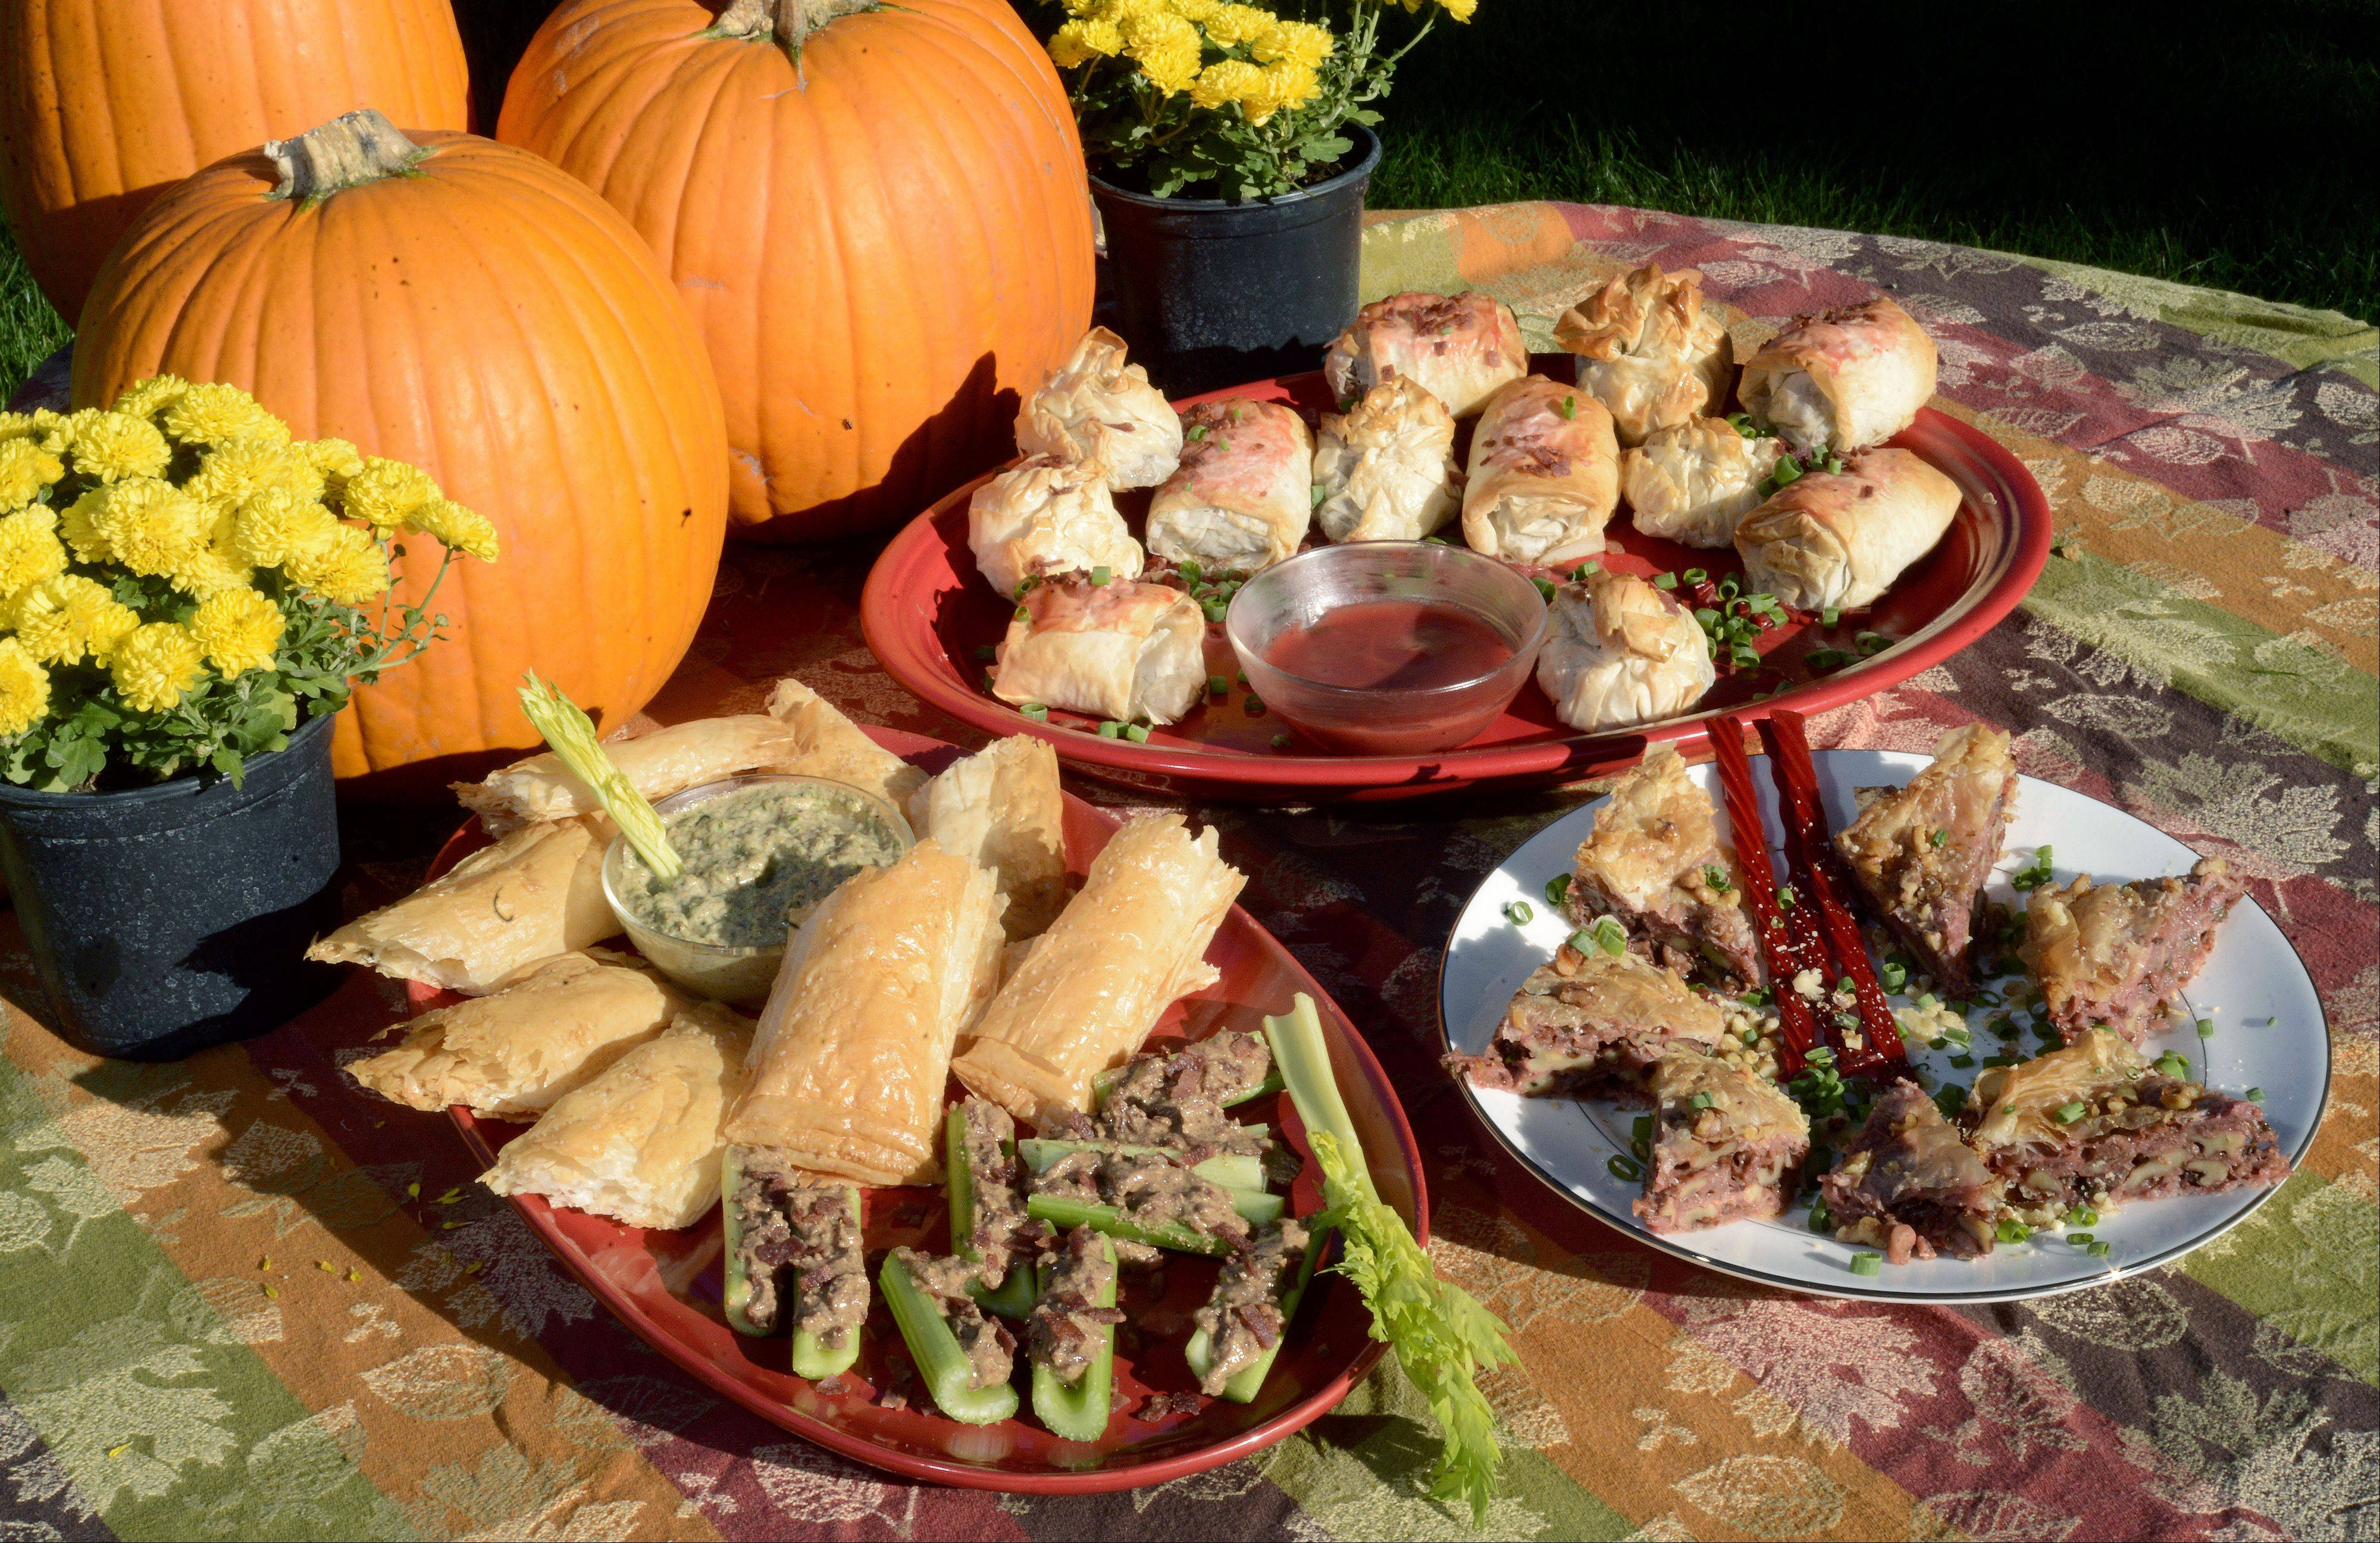 Dan Rich of Elgin created almond butter and bacon-stuffed celery boats; phyllo Bombs (with twisted tops) and Beef Wellington with almond butter pate, both served with a Twizzler port sauce; and savory Baklava.